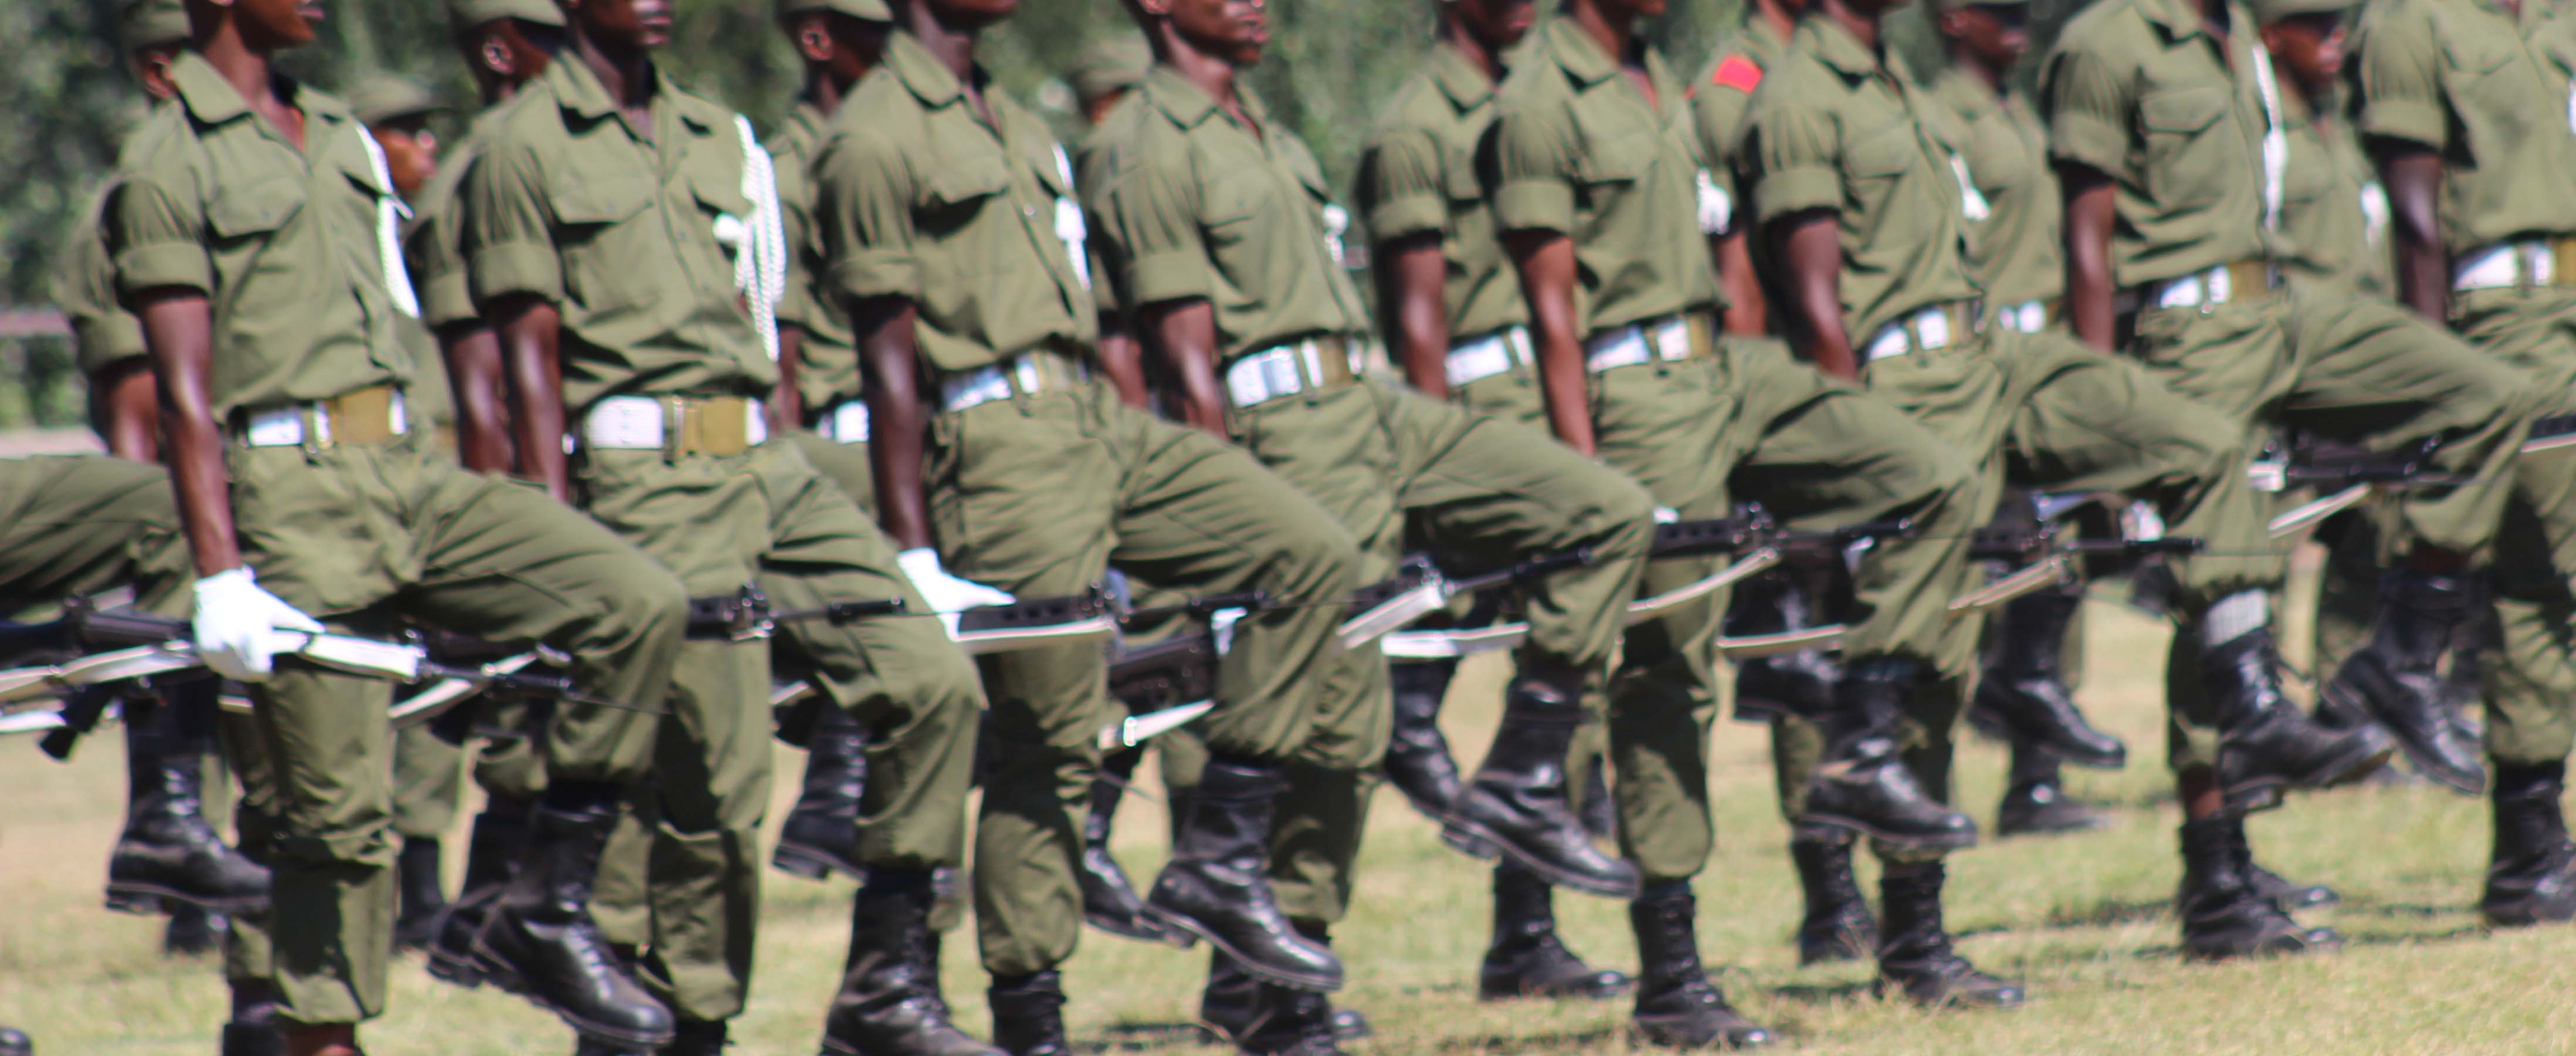 Mutiny' soldiers demand benefits - Lesotho Times